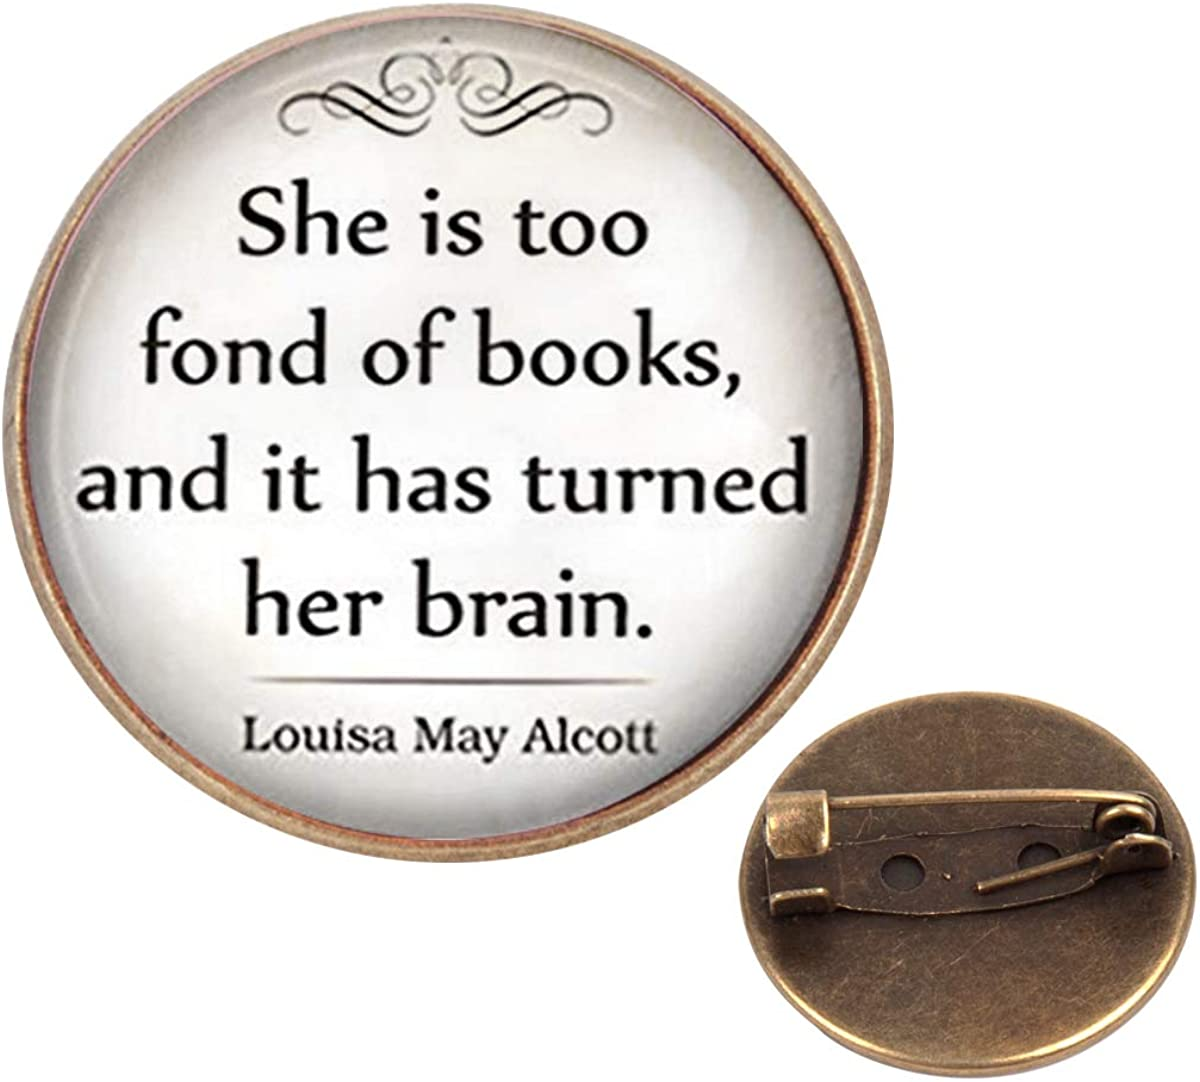 Pinback Buttons Badges Pins She is Too Fond of Books Quote Book Book Lovers Librarian Lapel Pin Brooch Clip Trendy Accessory Jacket T-Shirt Bag Hat Shoe